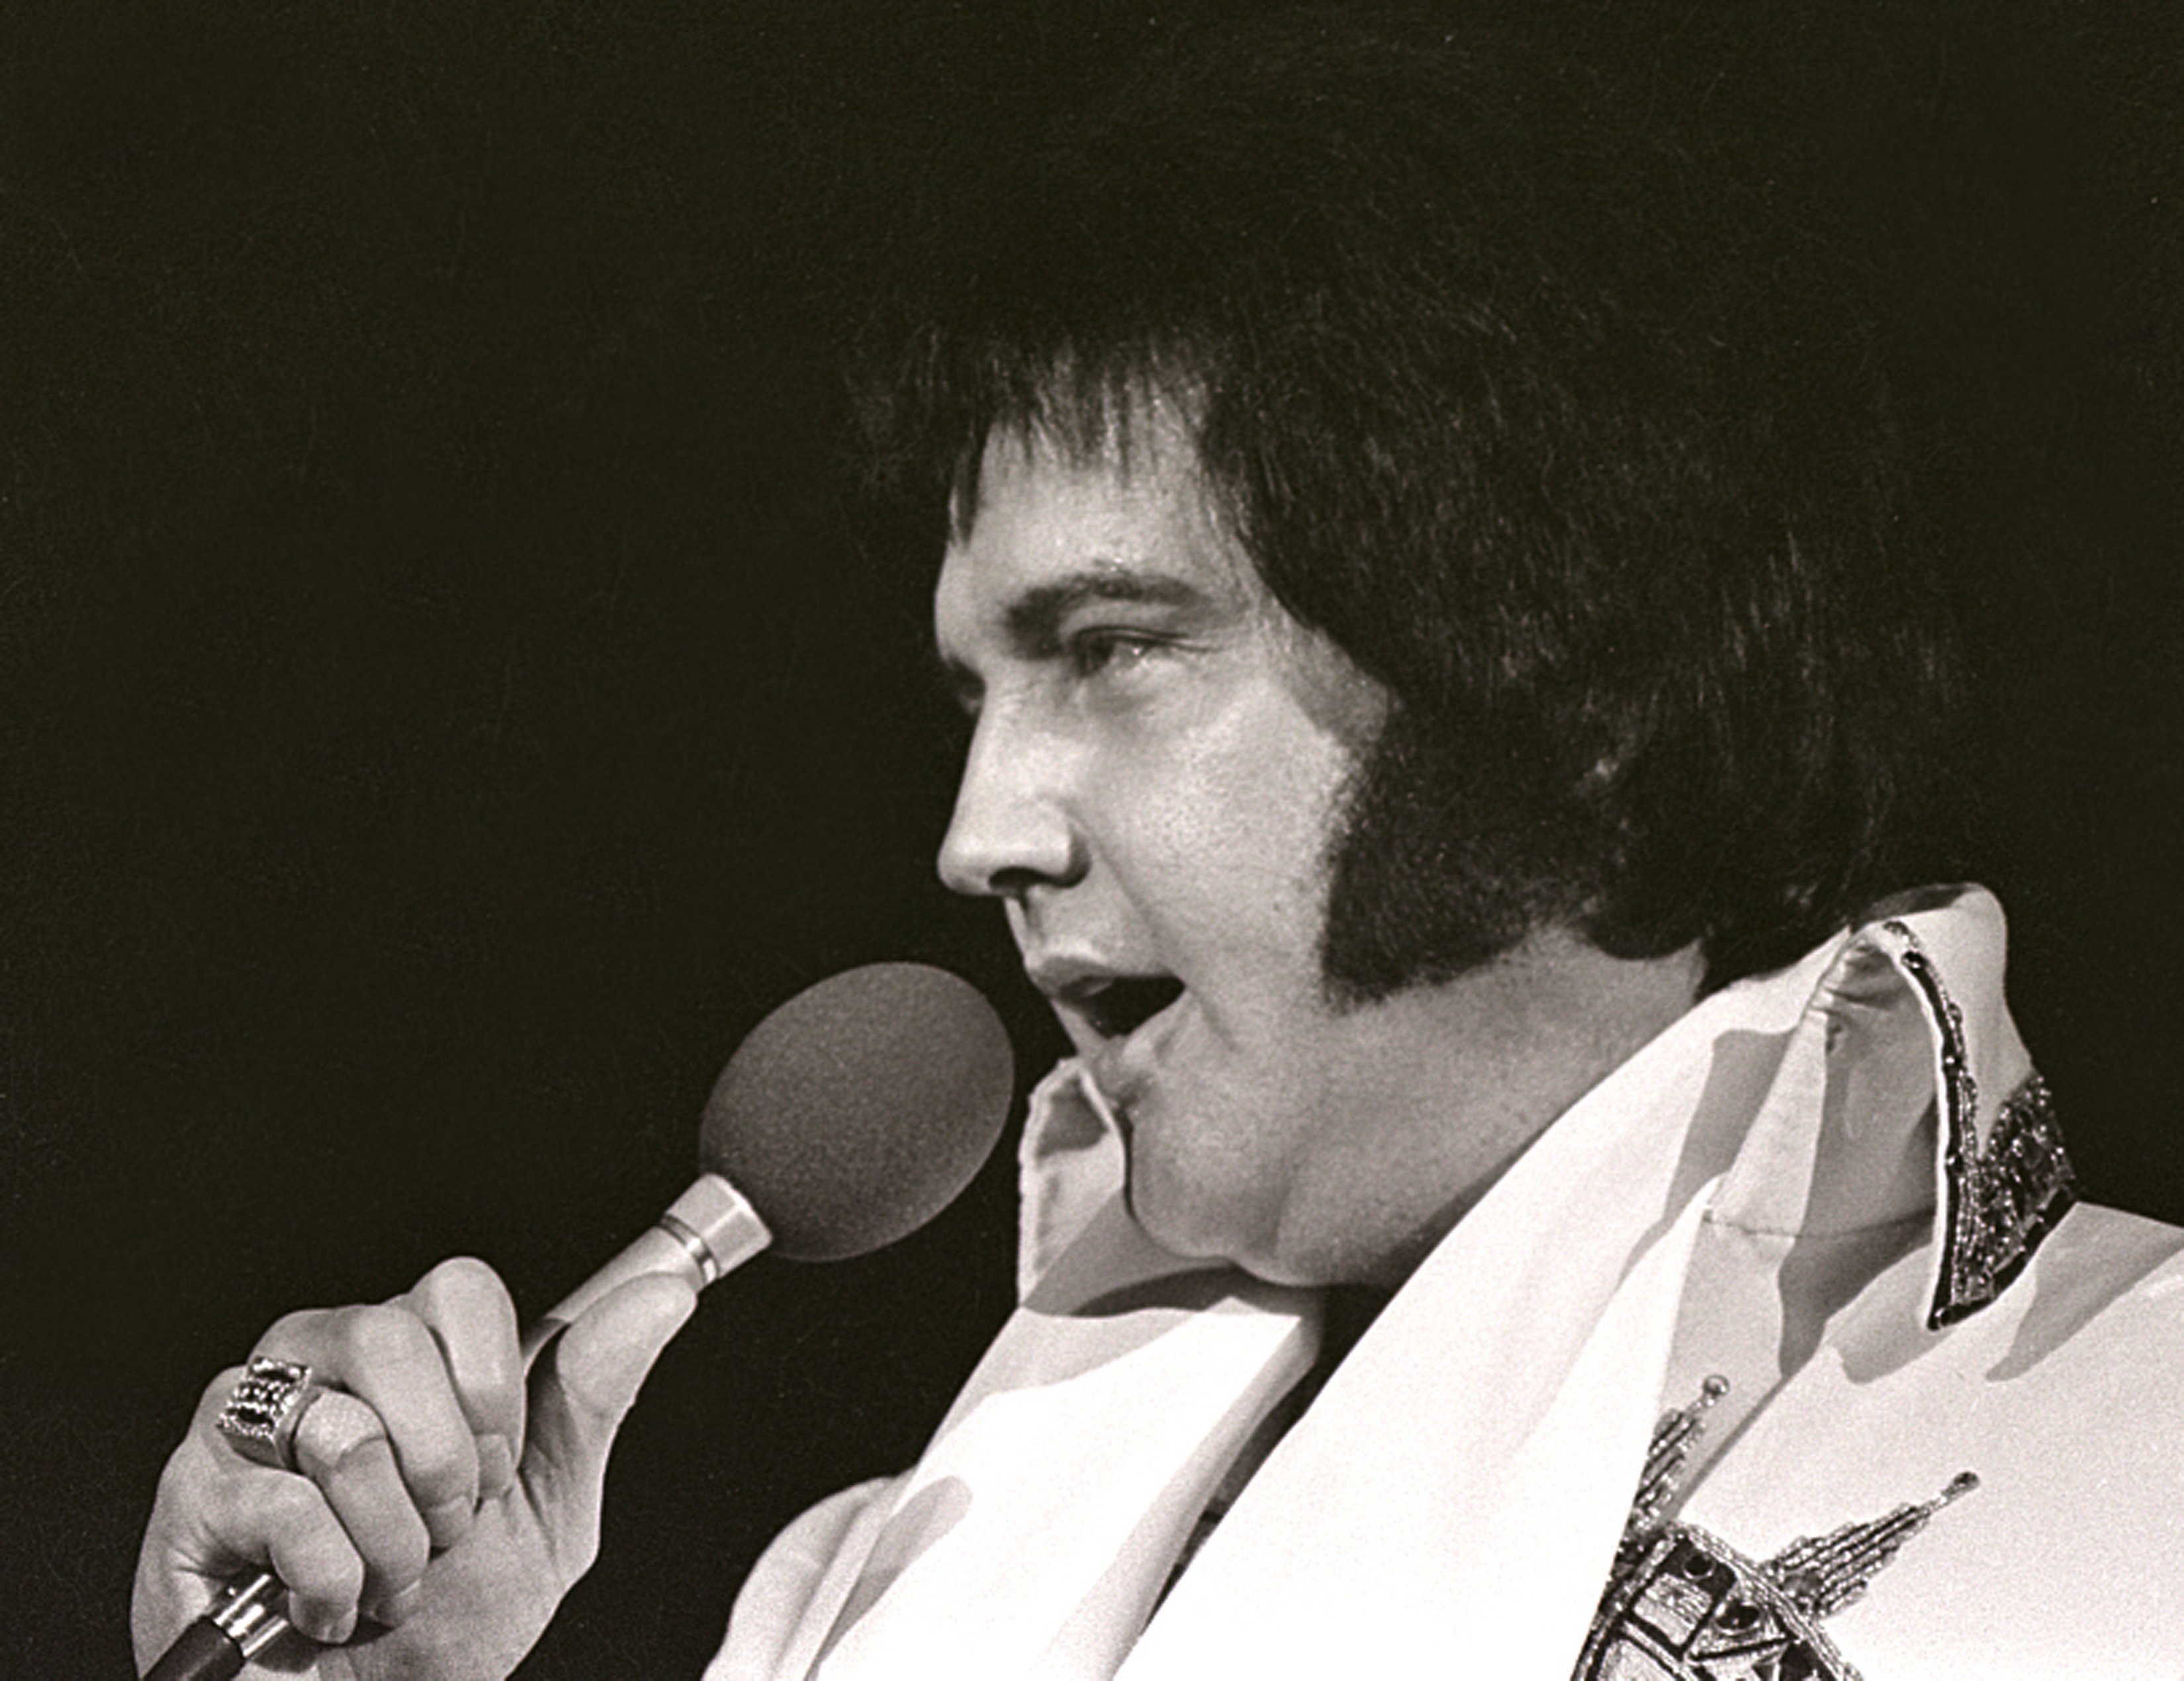 Image Credits: Getty Images | The iconic American singer suffered from glaucoma, high blood pressure, and liver damage